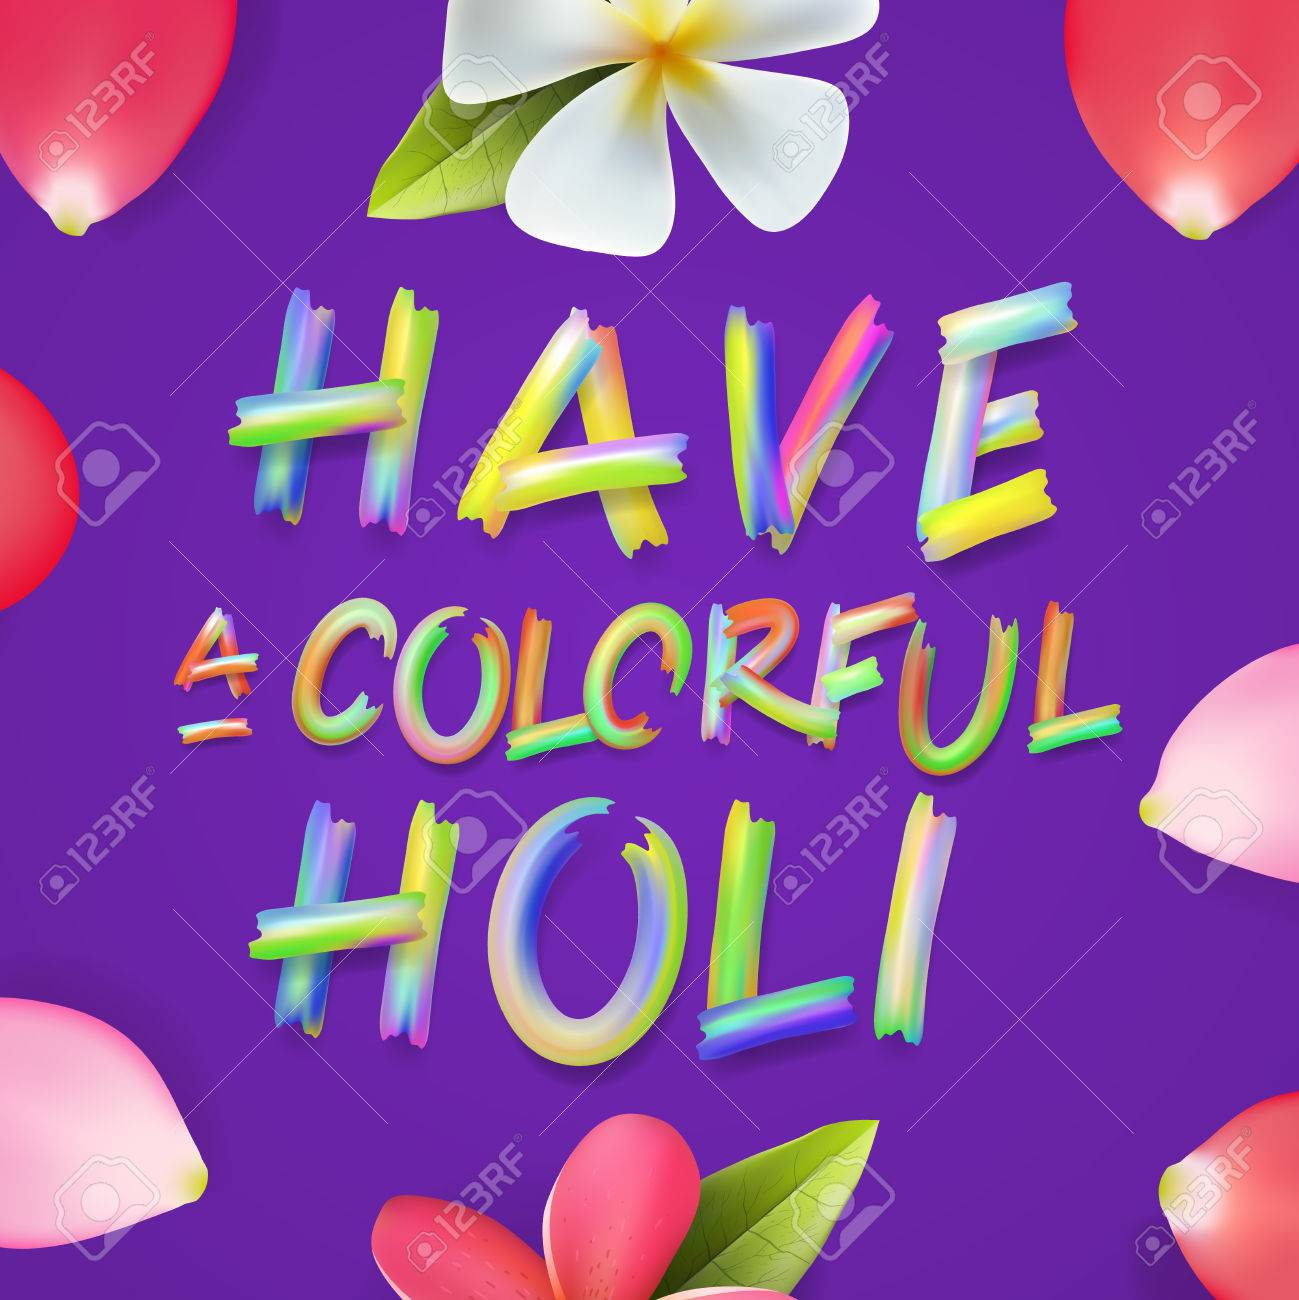 Have A Colorful Holi, Poster Of Indian Color Festival, Can Be ...